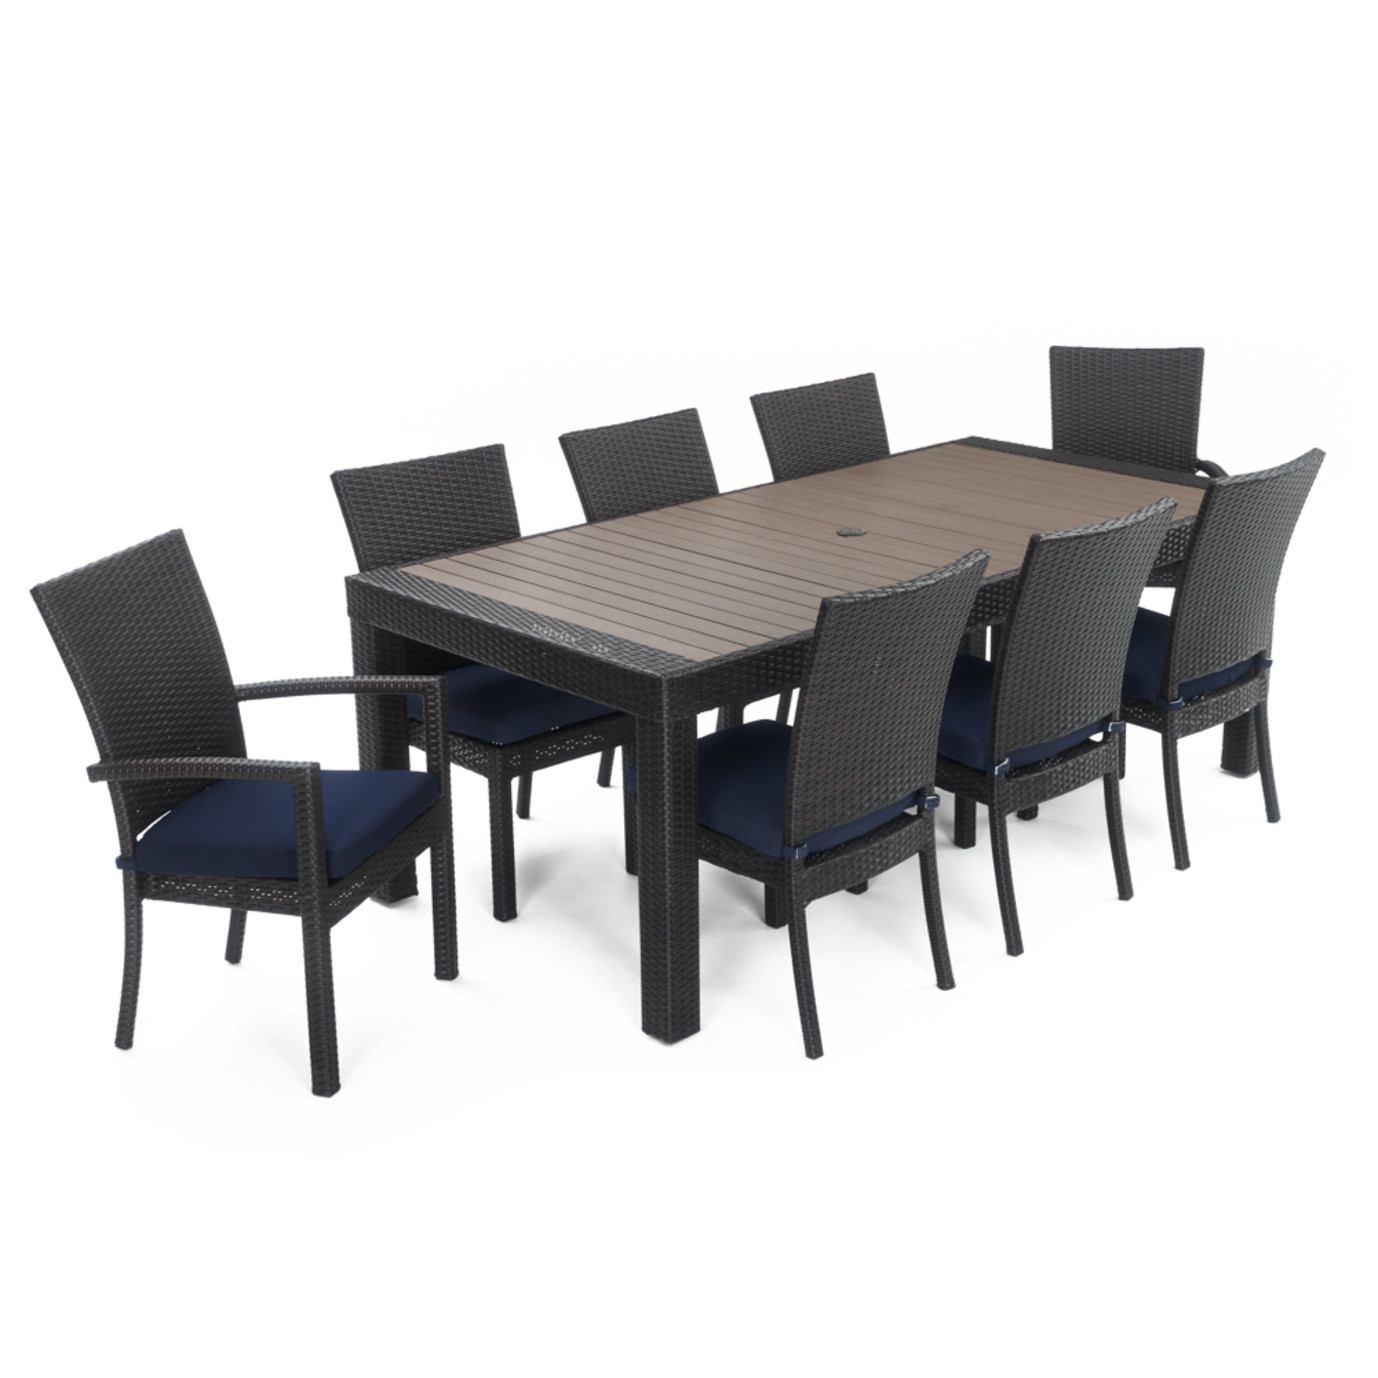 Deco™ 9 Piece Dining Set - Navy Blue